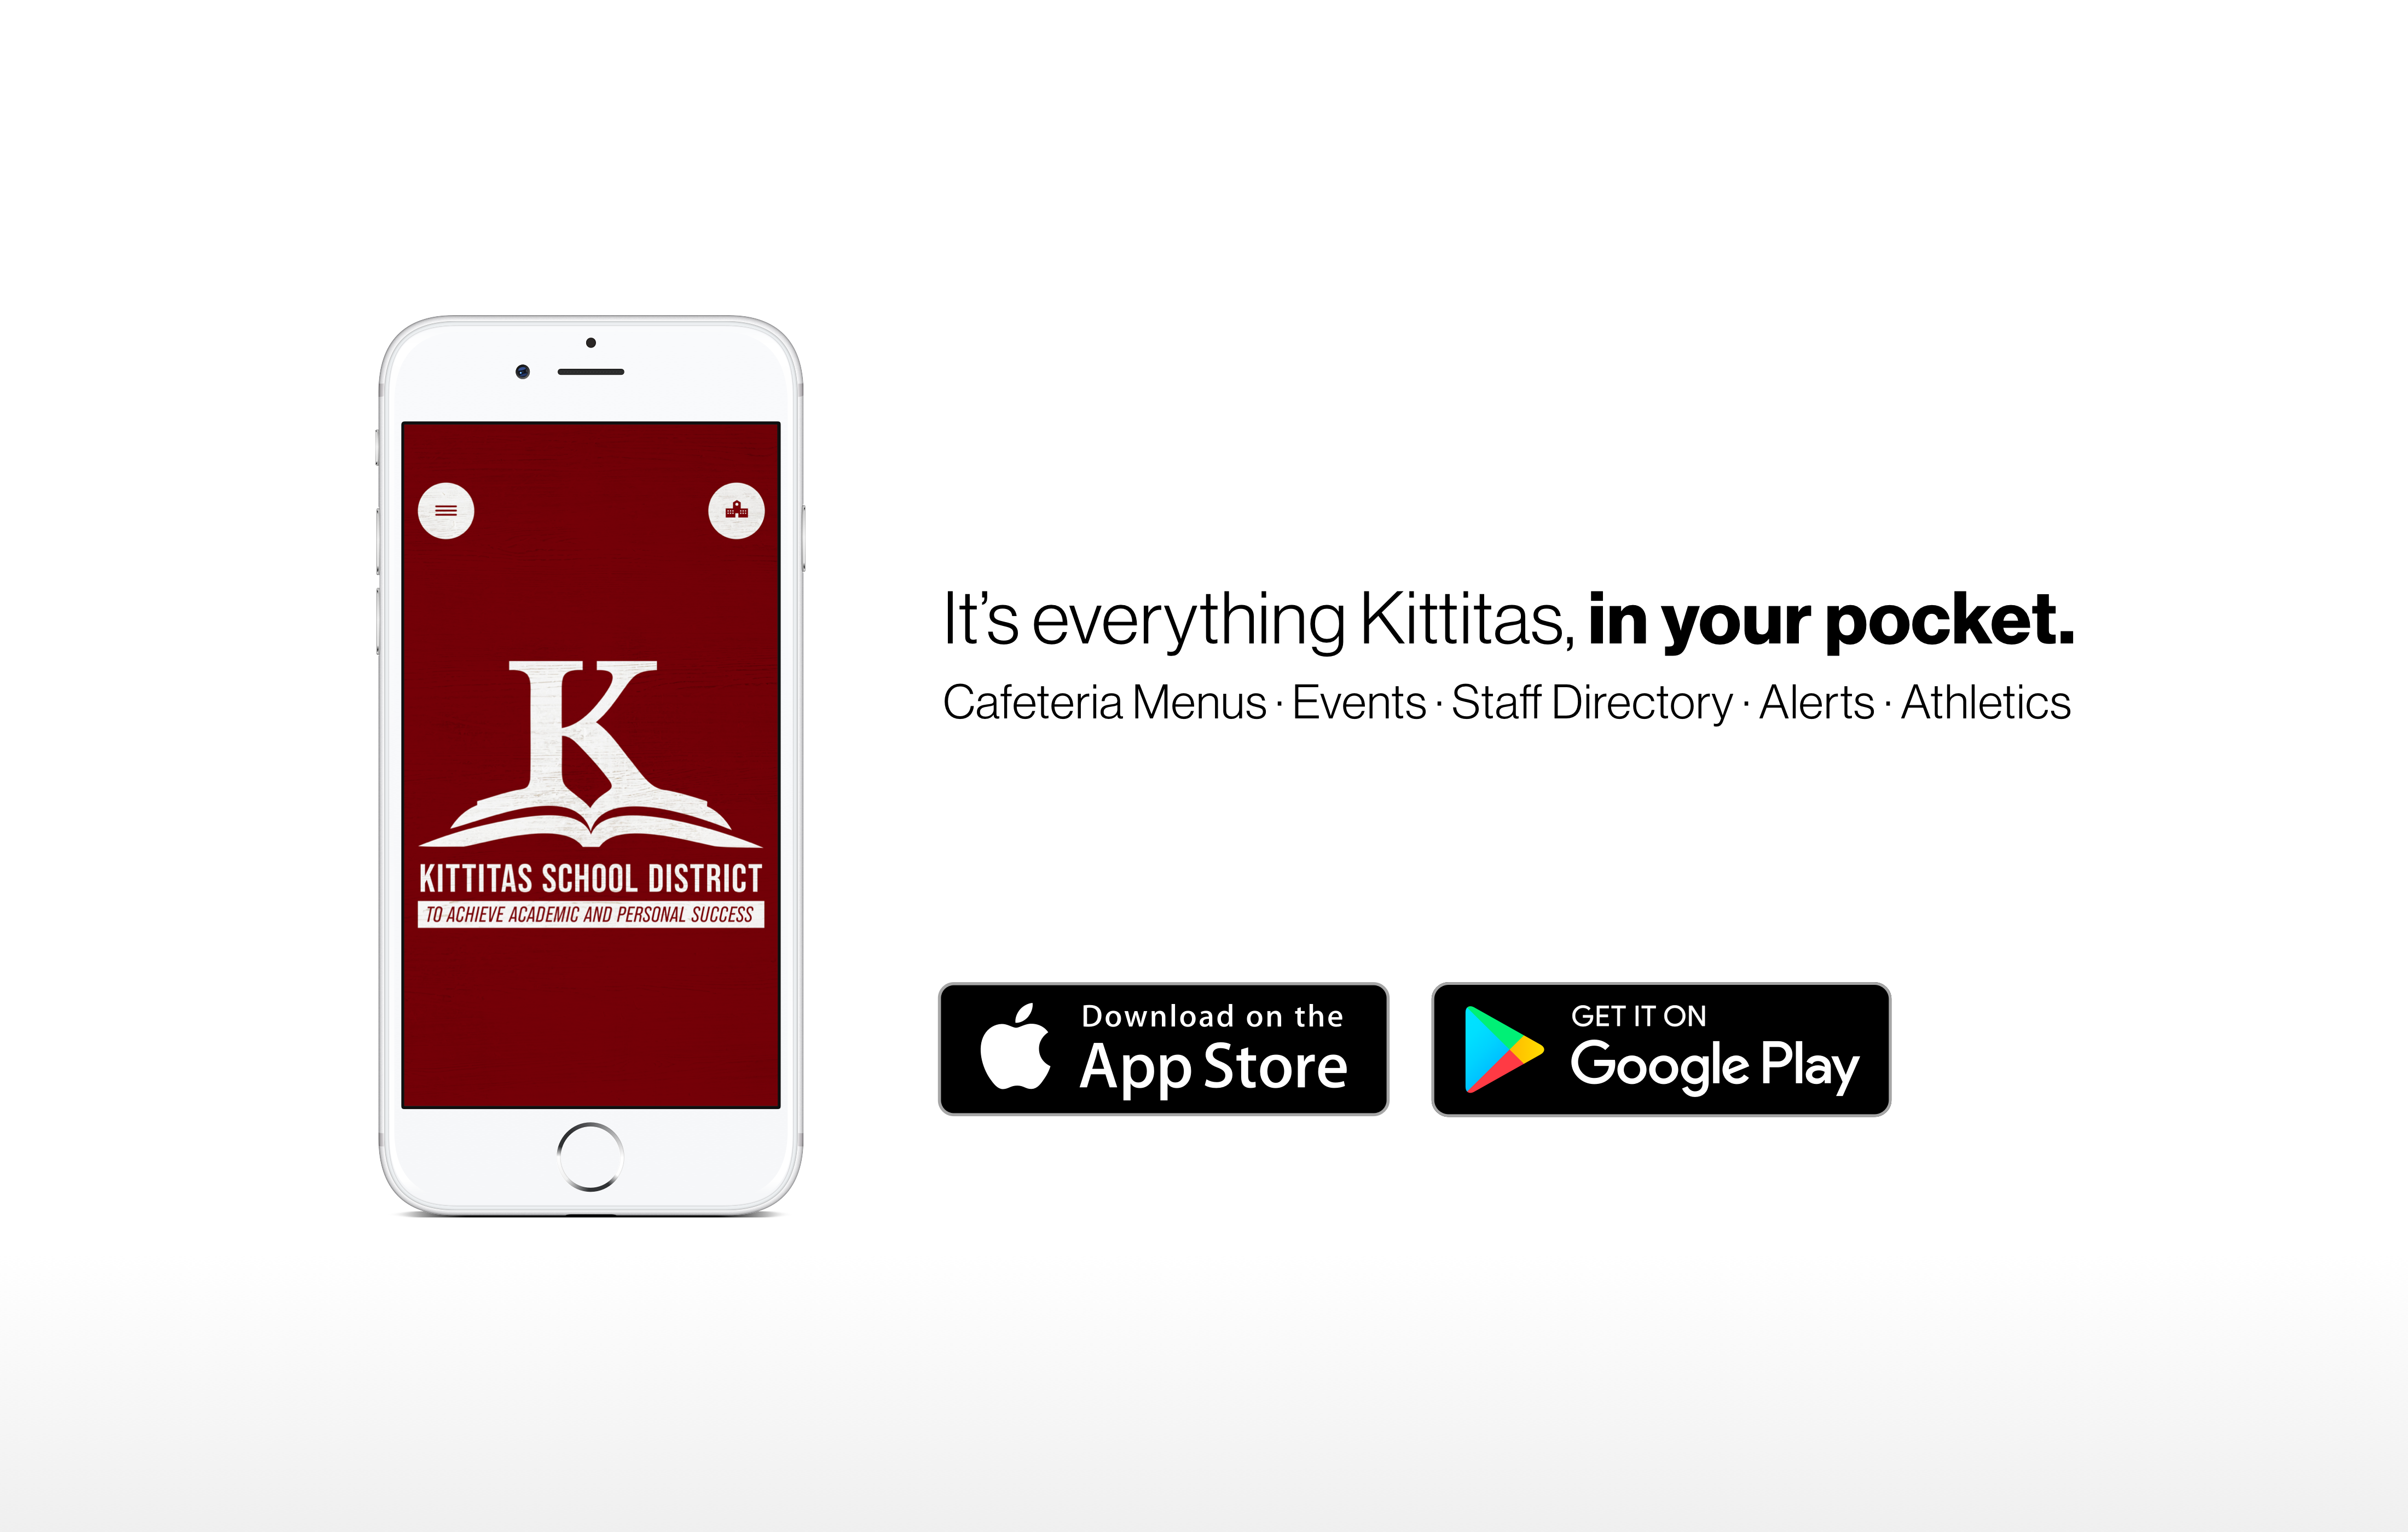 It's everything Kittitas, in your pocket.